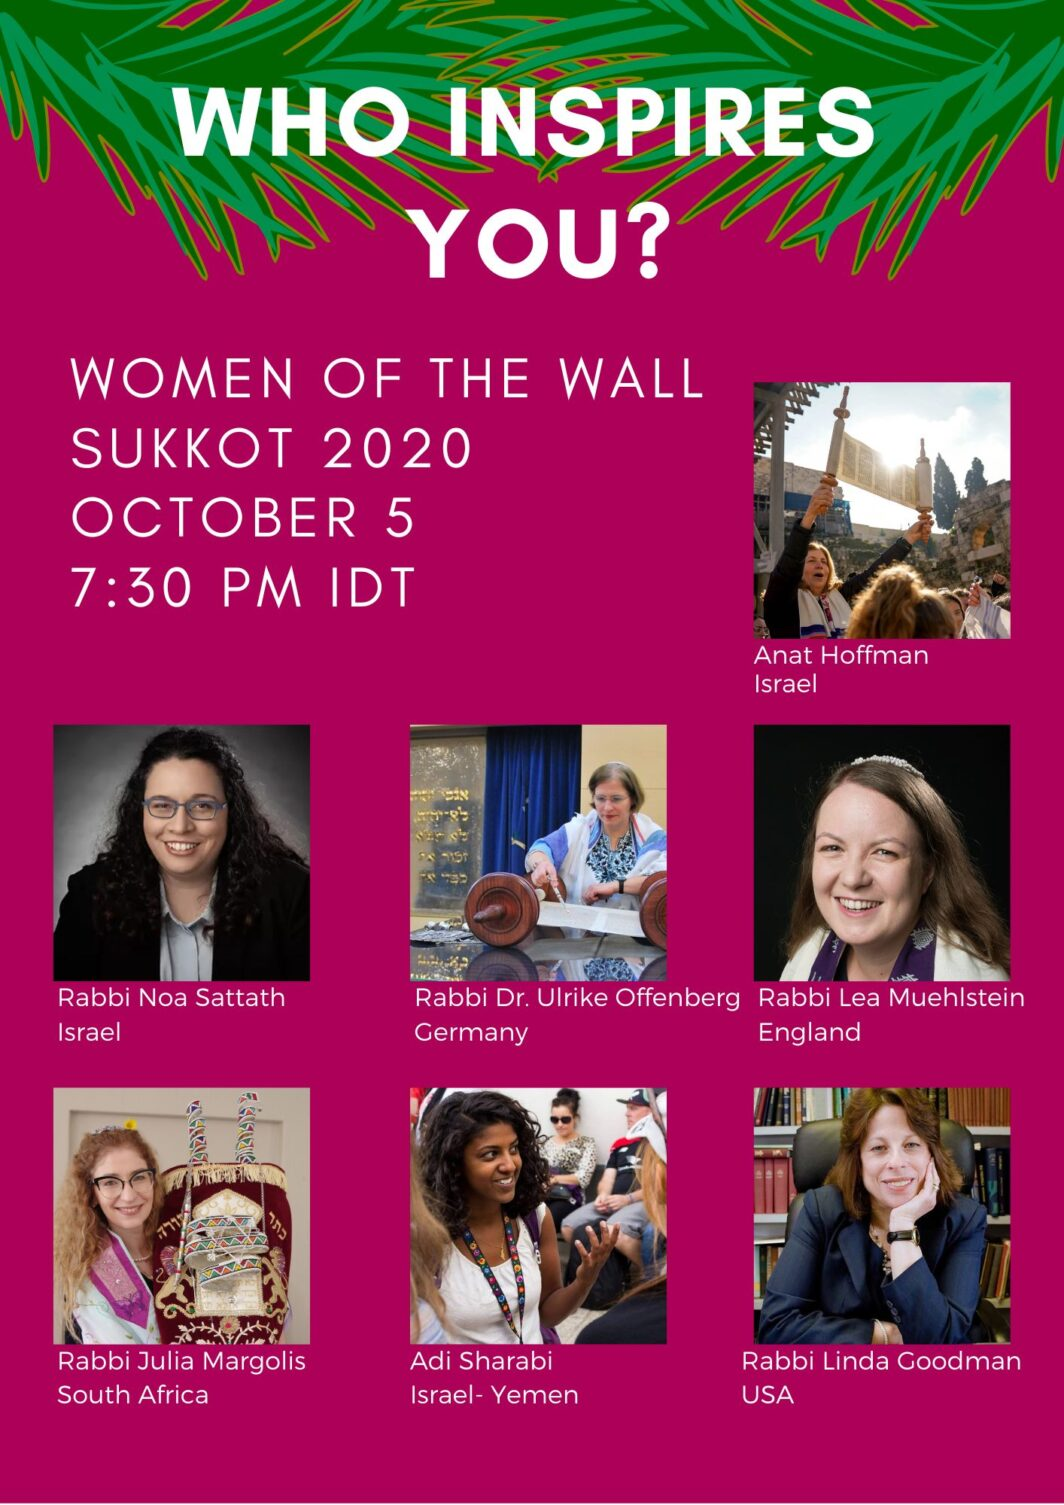 Women of the Wall event